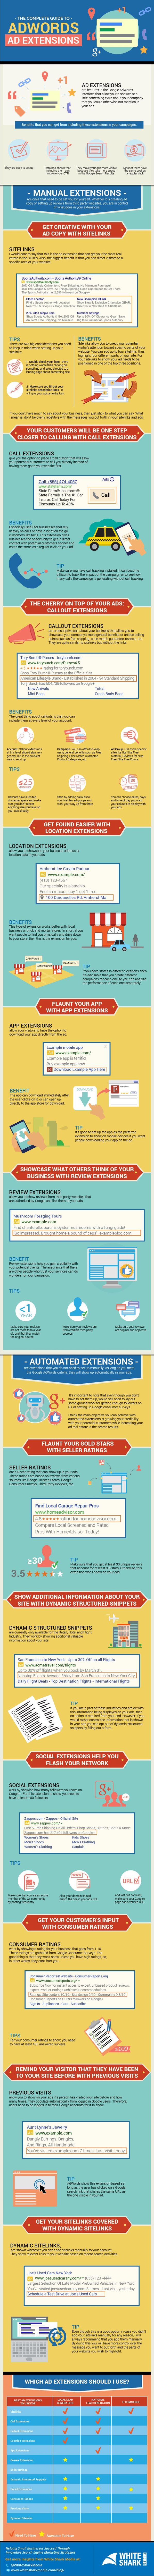 Do you use Ad Extensions? Here is a complete guide to Adwords Extensions. #PPC